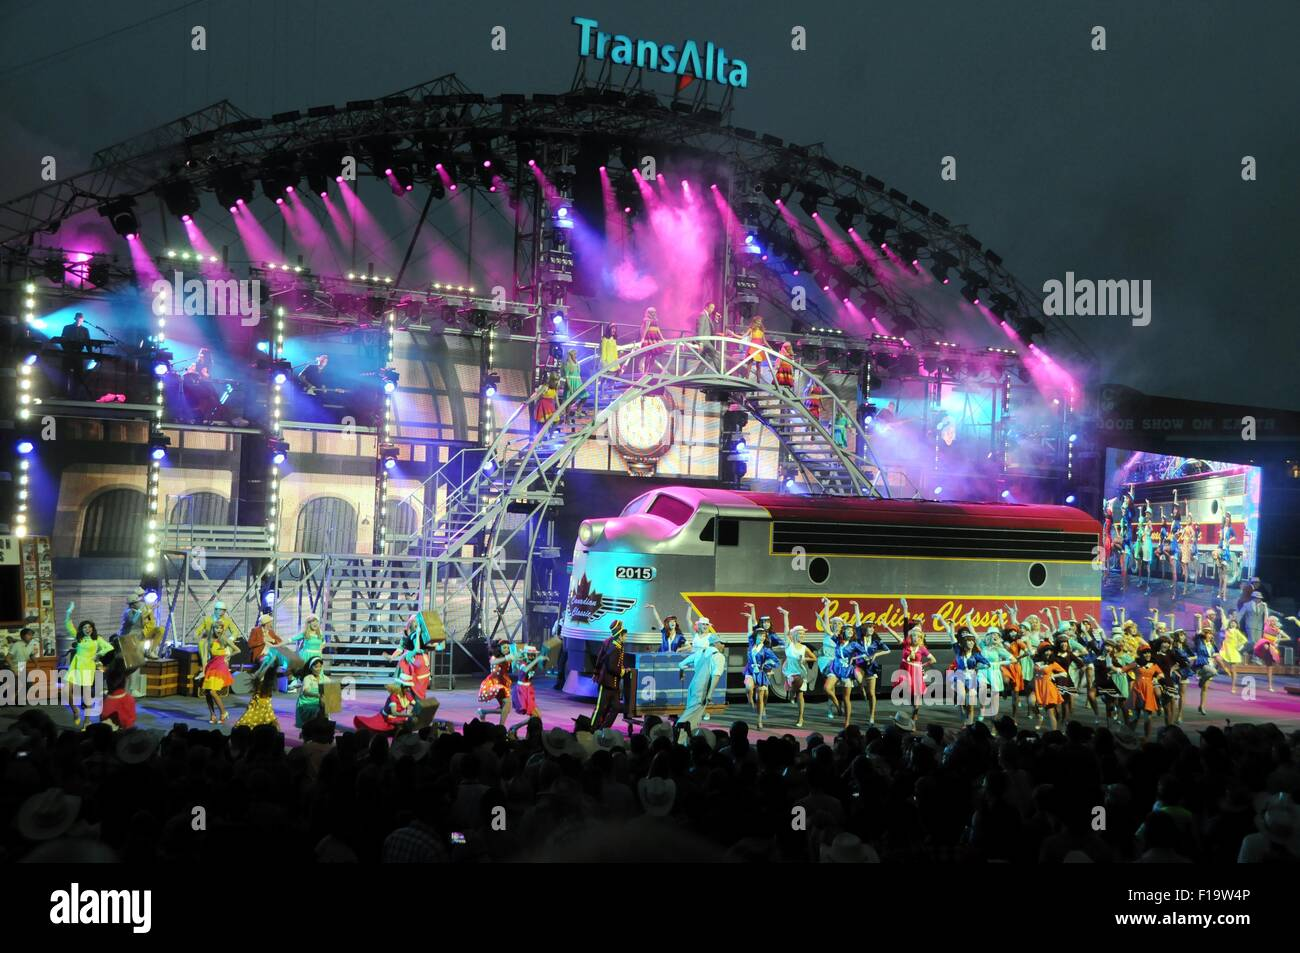 CALGARY STAMPEDE 2015.  The spectacular night show showcasing all things Canadian. - Stock Image